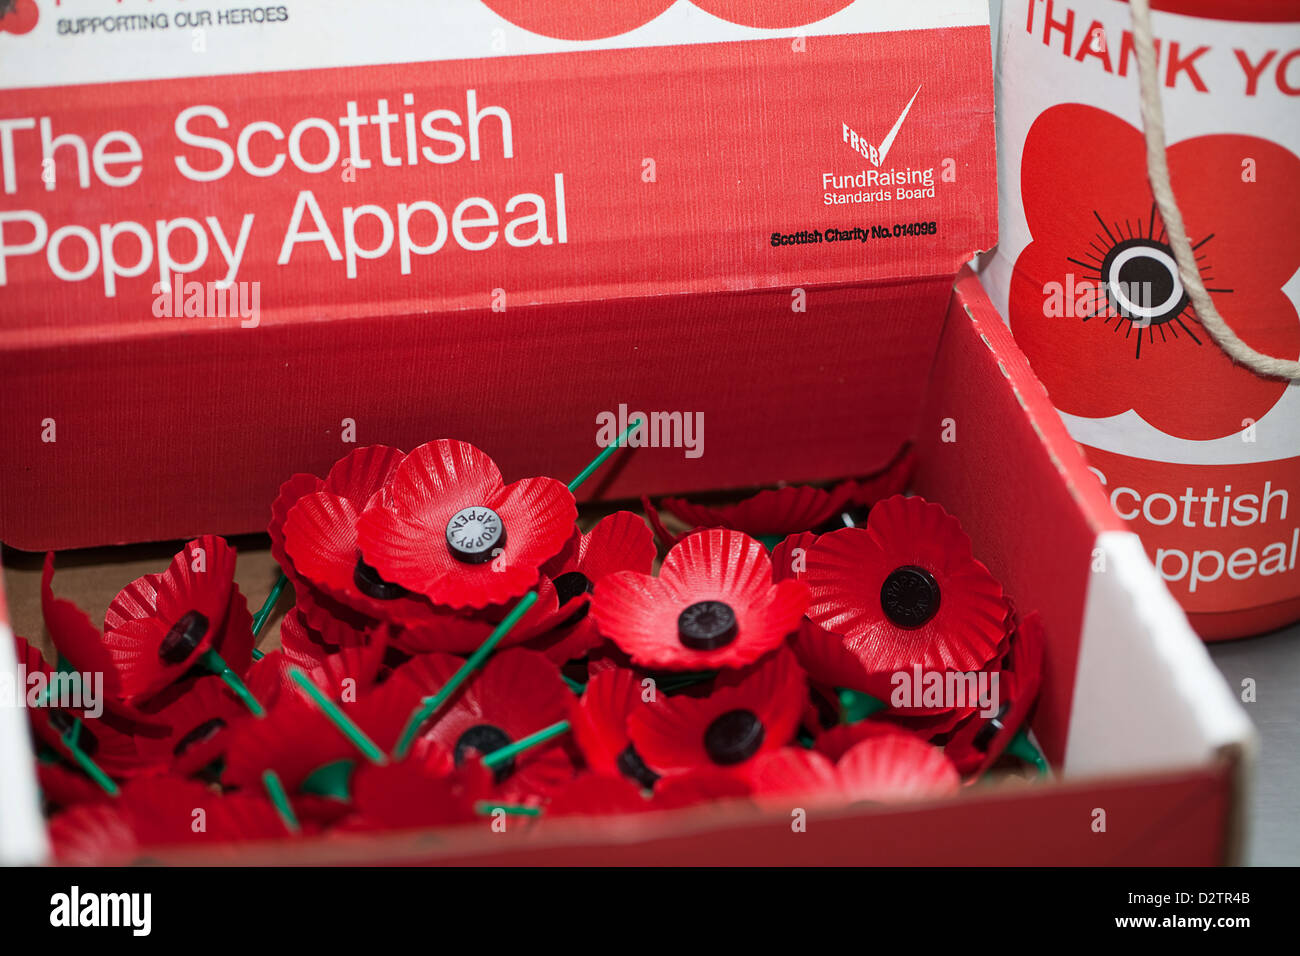 remembrance day poppies for sale in aid of the scottish poppy